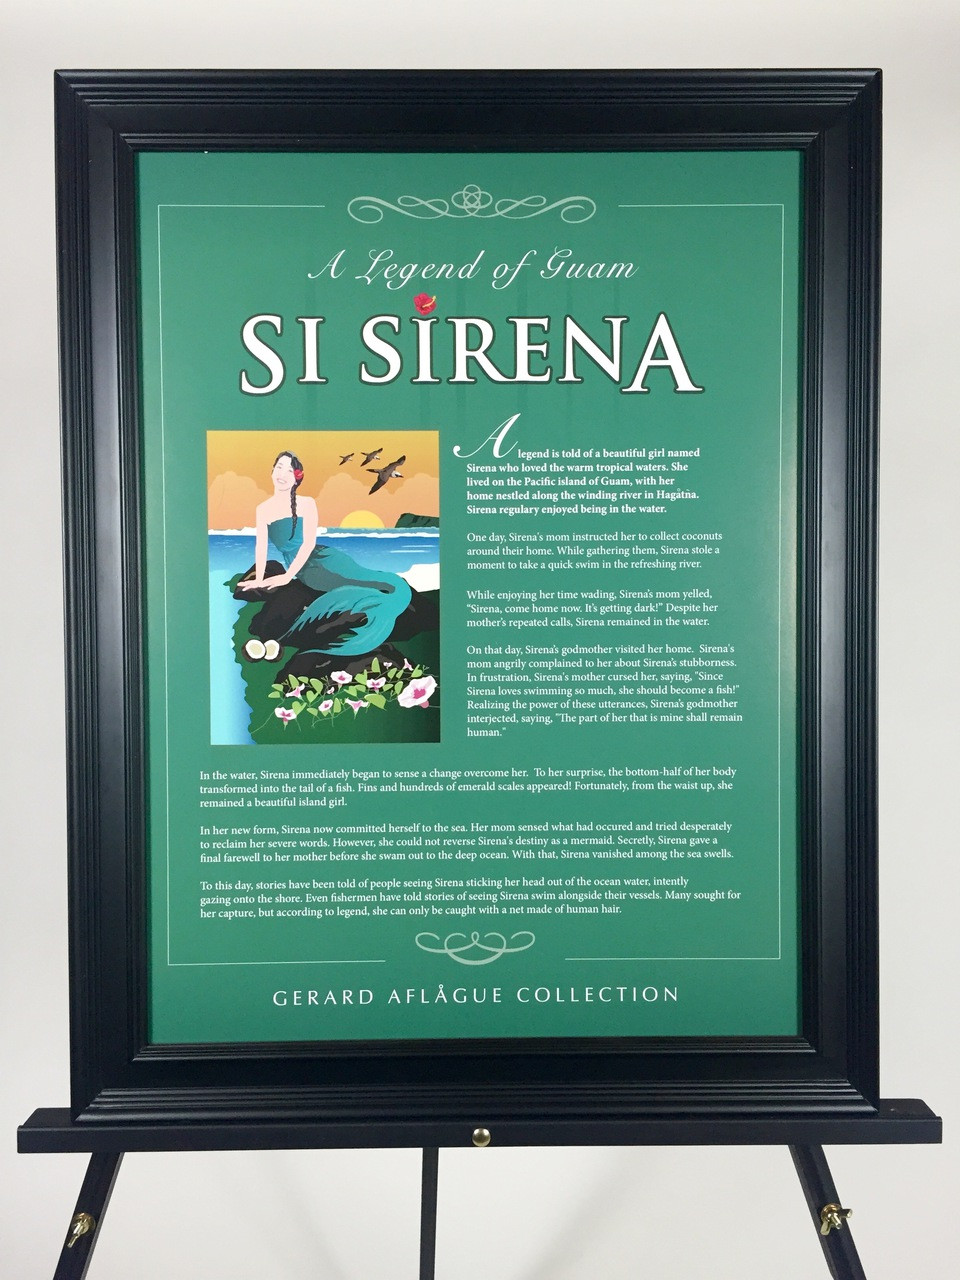 legend of guam si sirena illustrated story on poster 18x24 frame not included